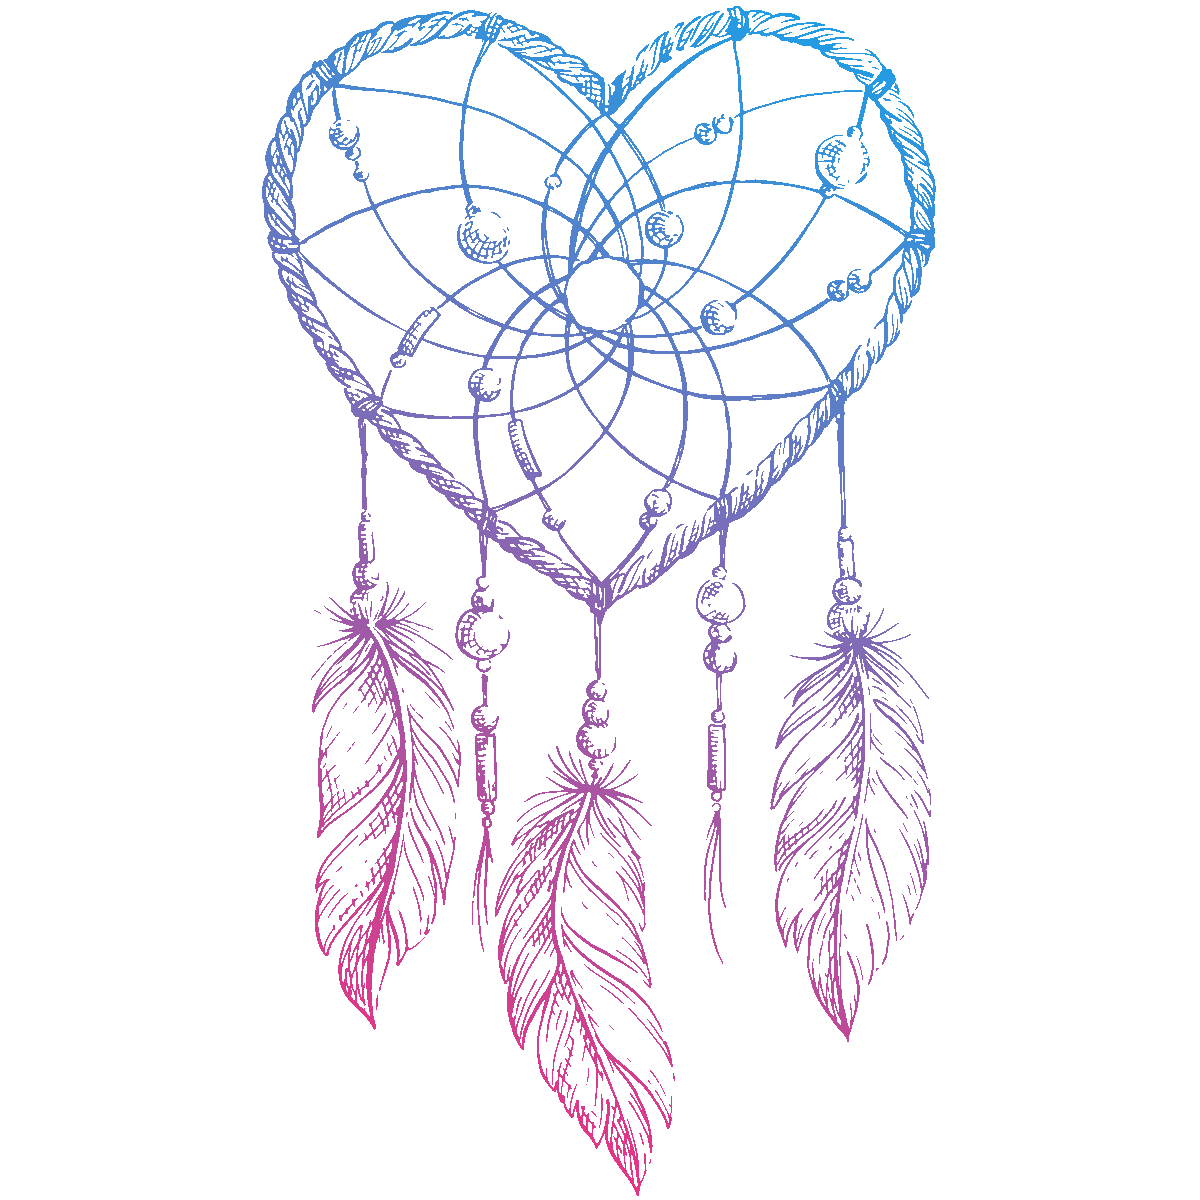 Drawing Dreamcatcher PNG Image High Quality PNG Image